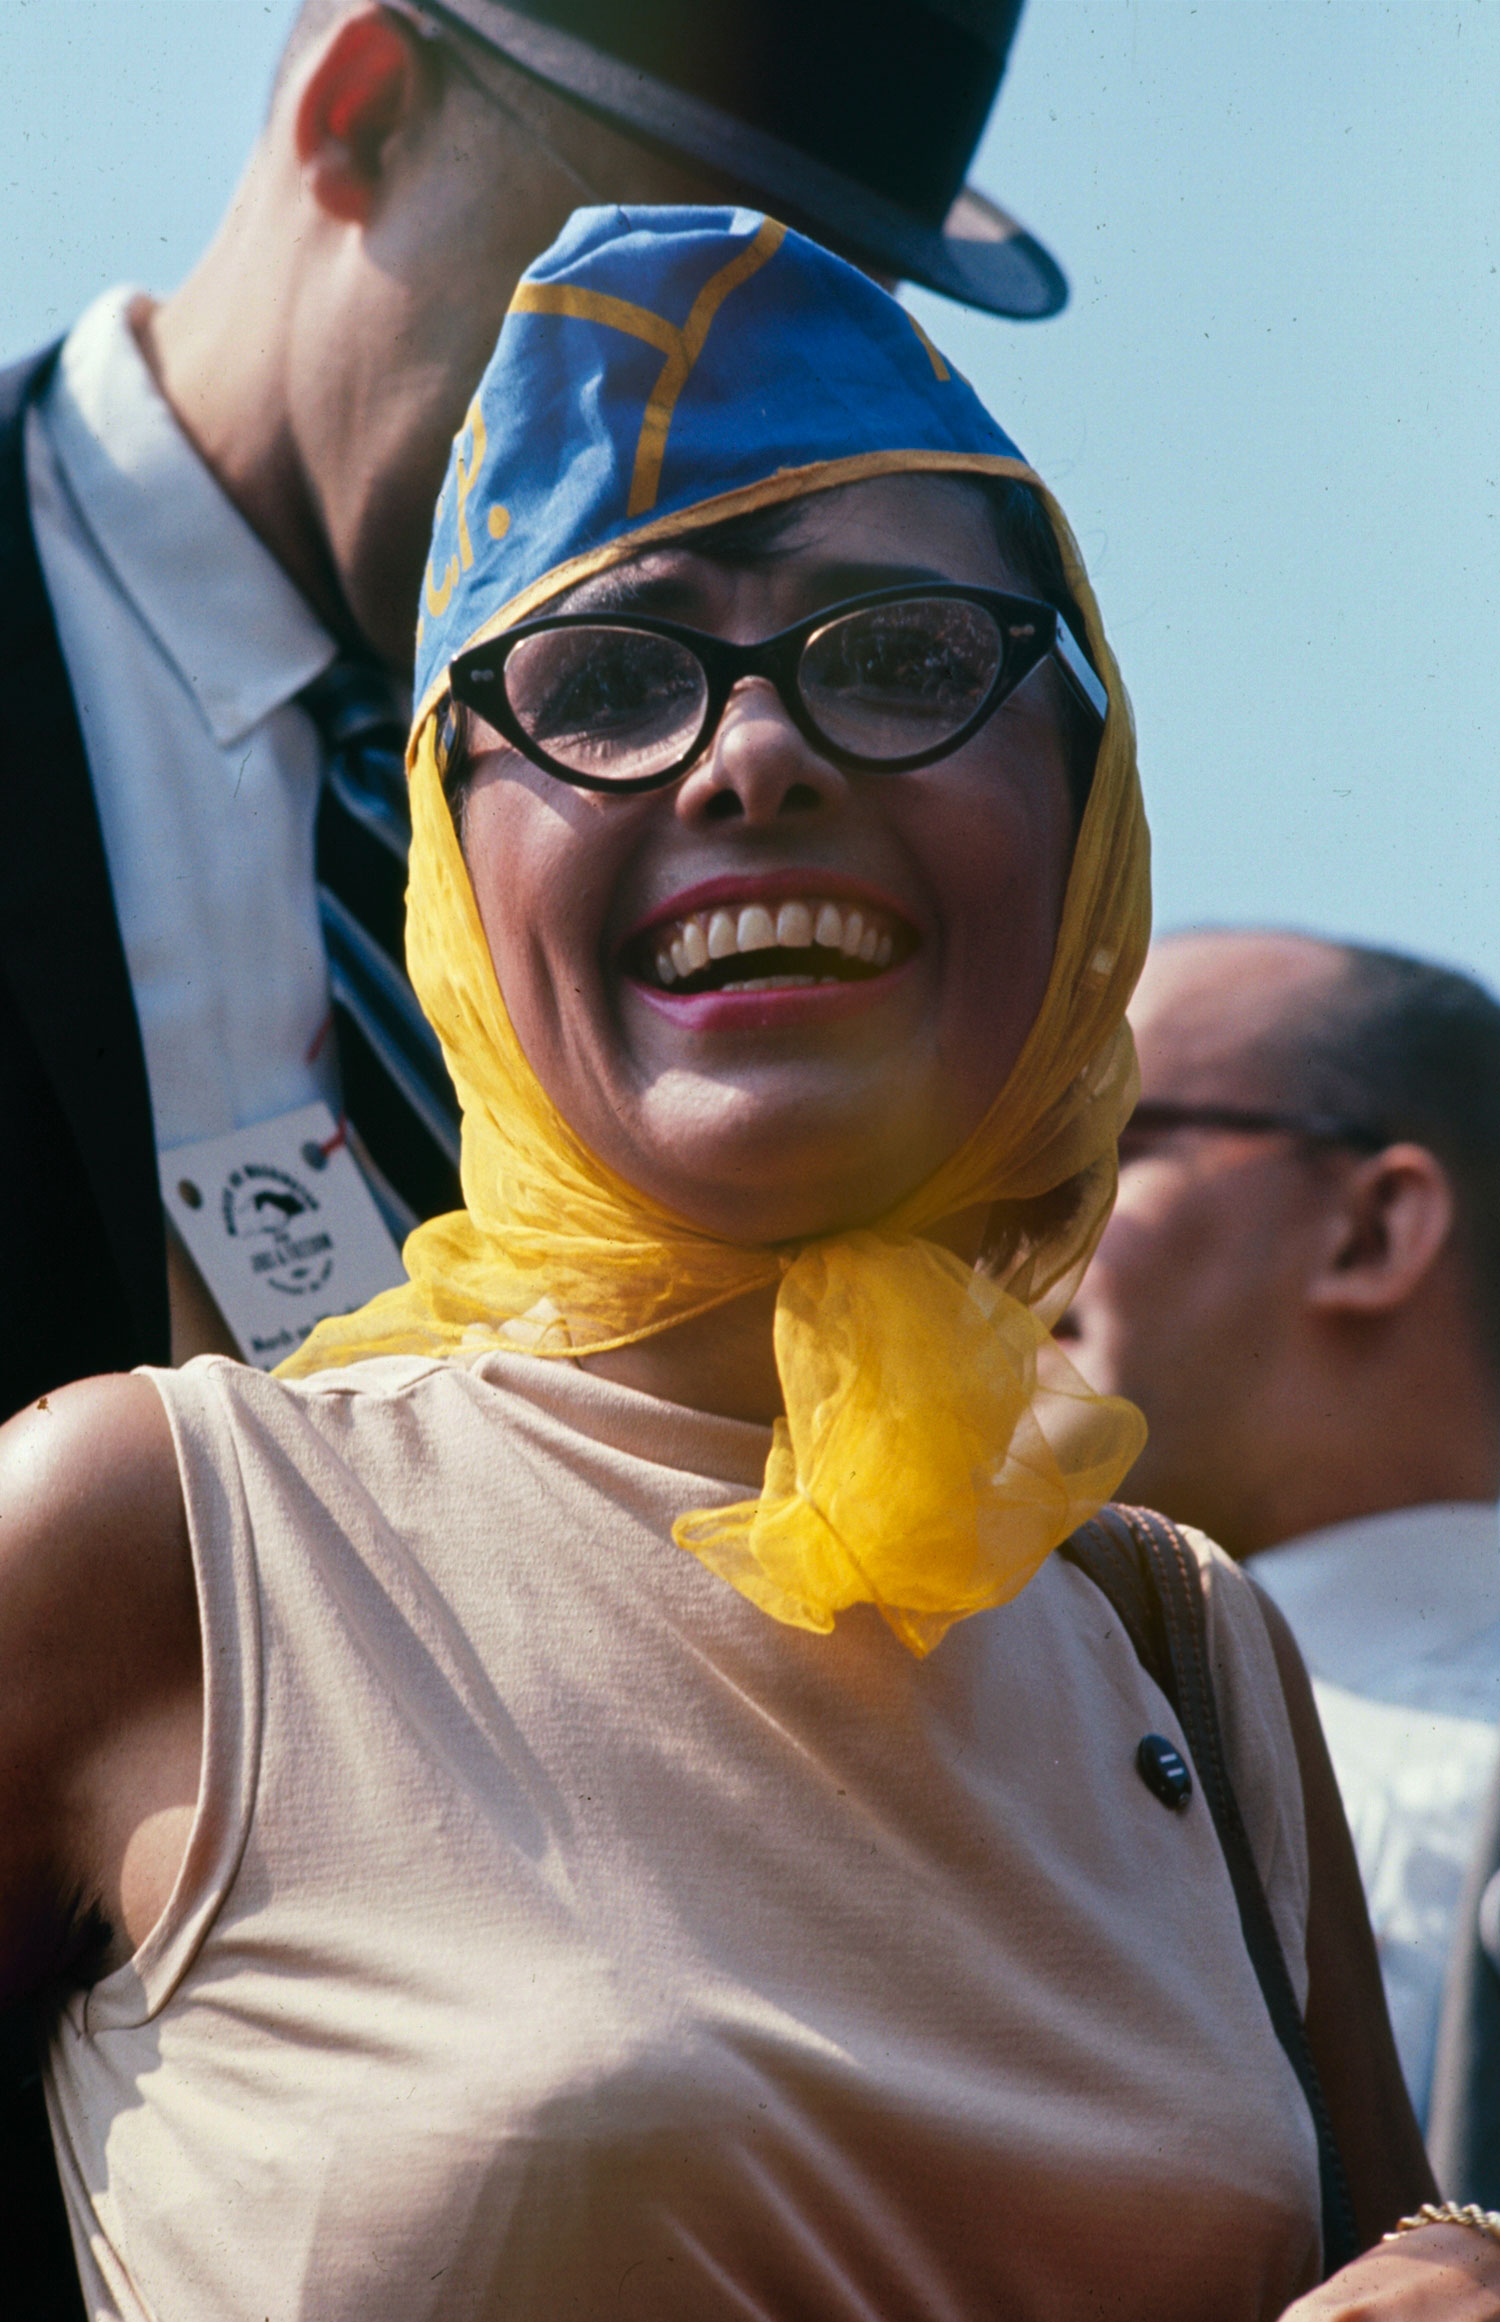 Lena Horne at the March on Washington for Jobs and Freedom, August 28, 1963.